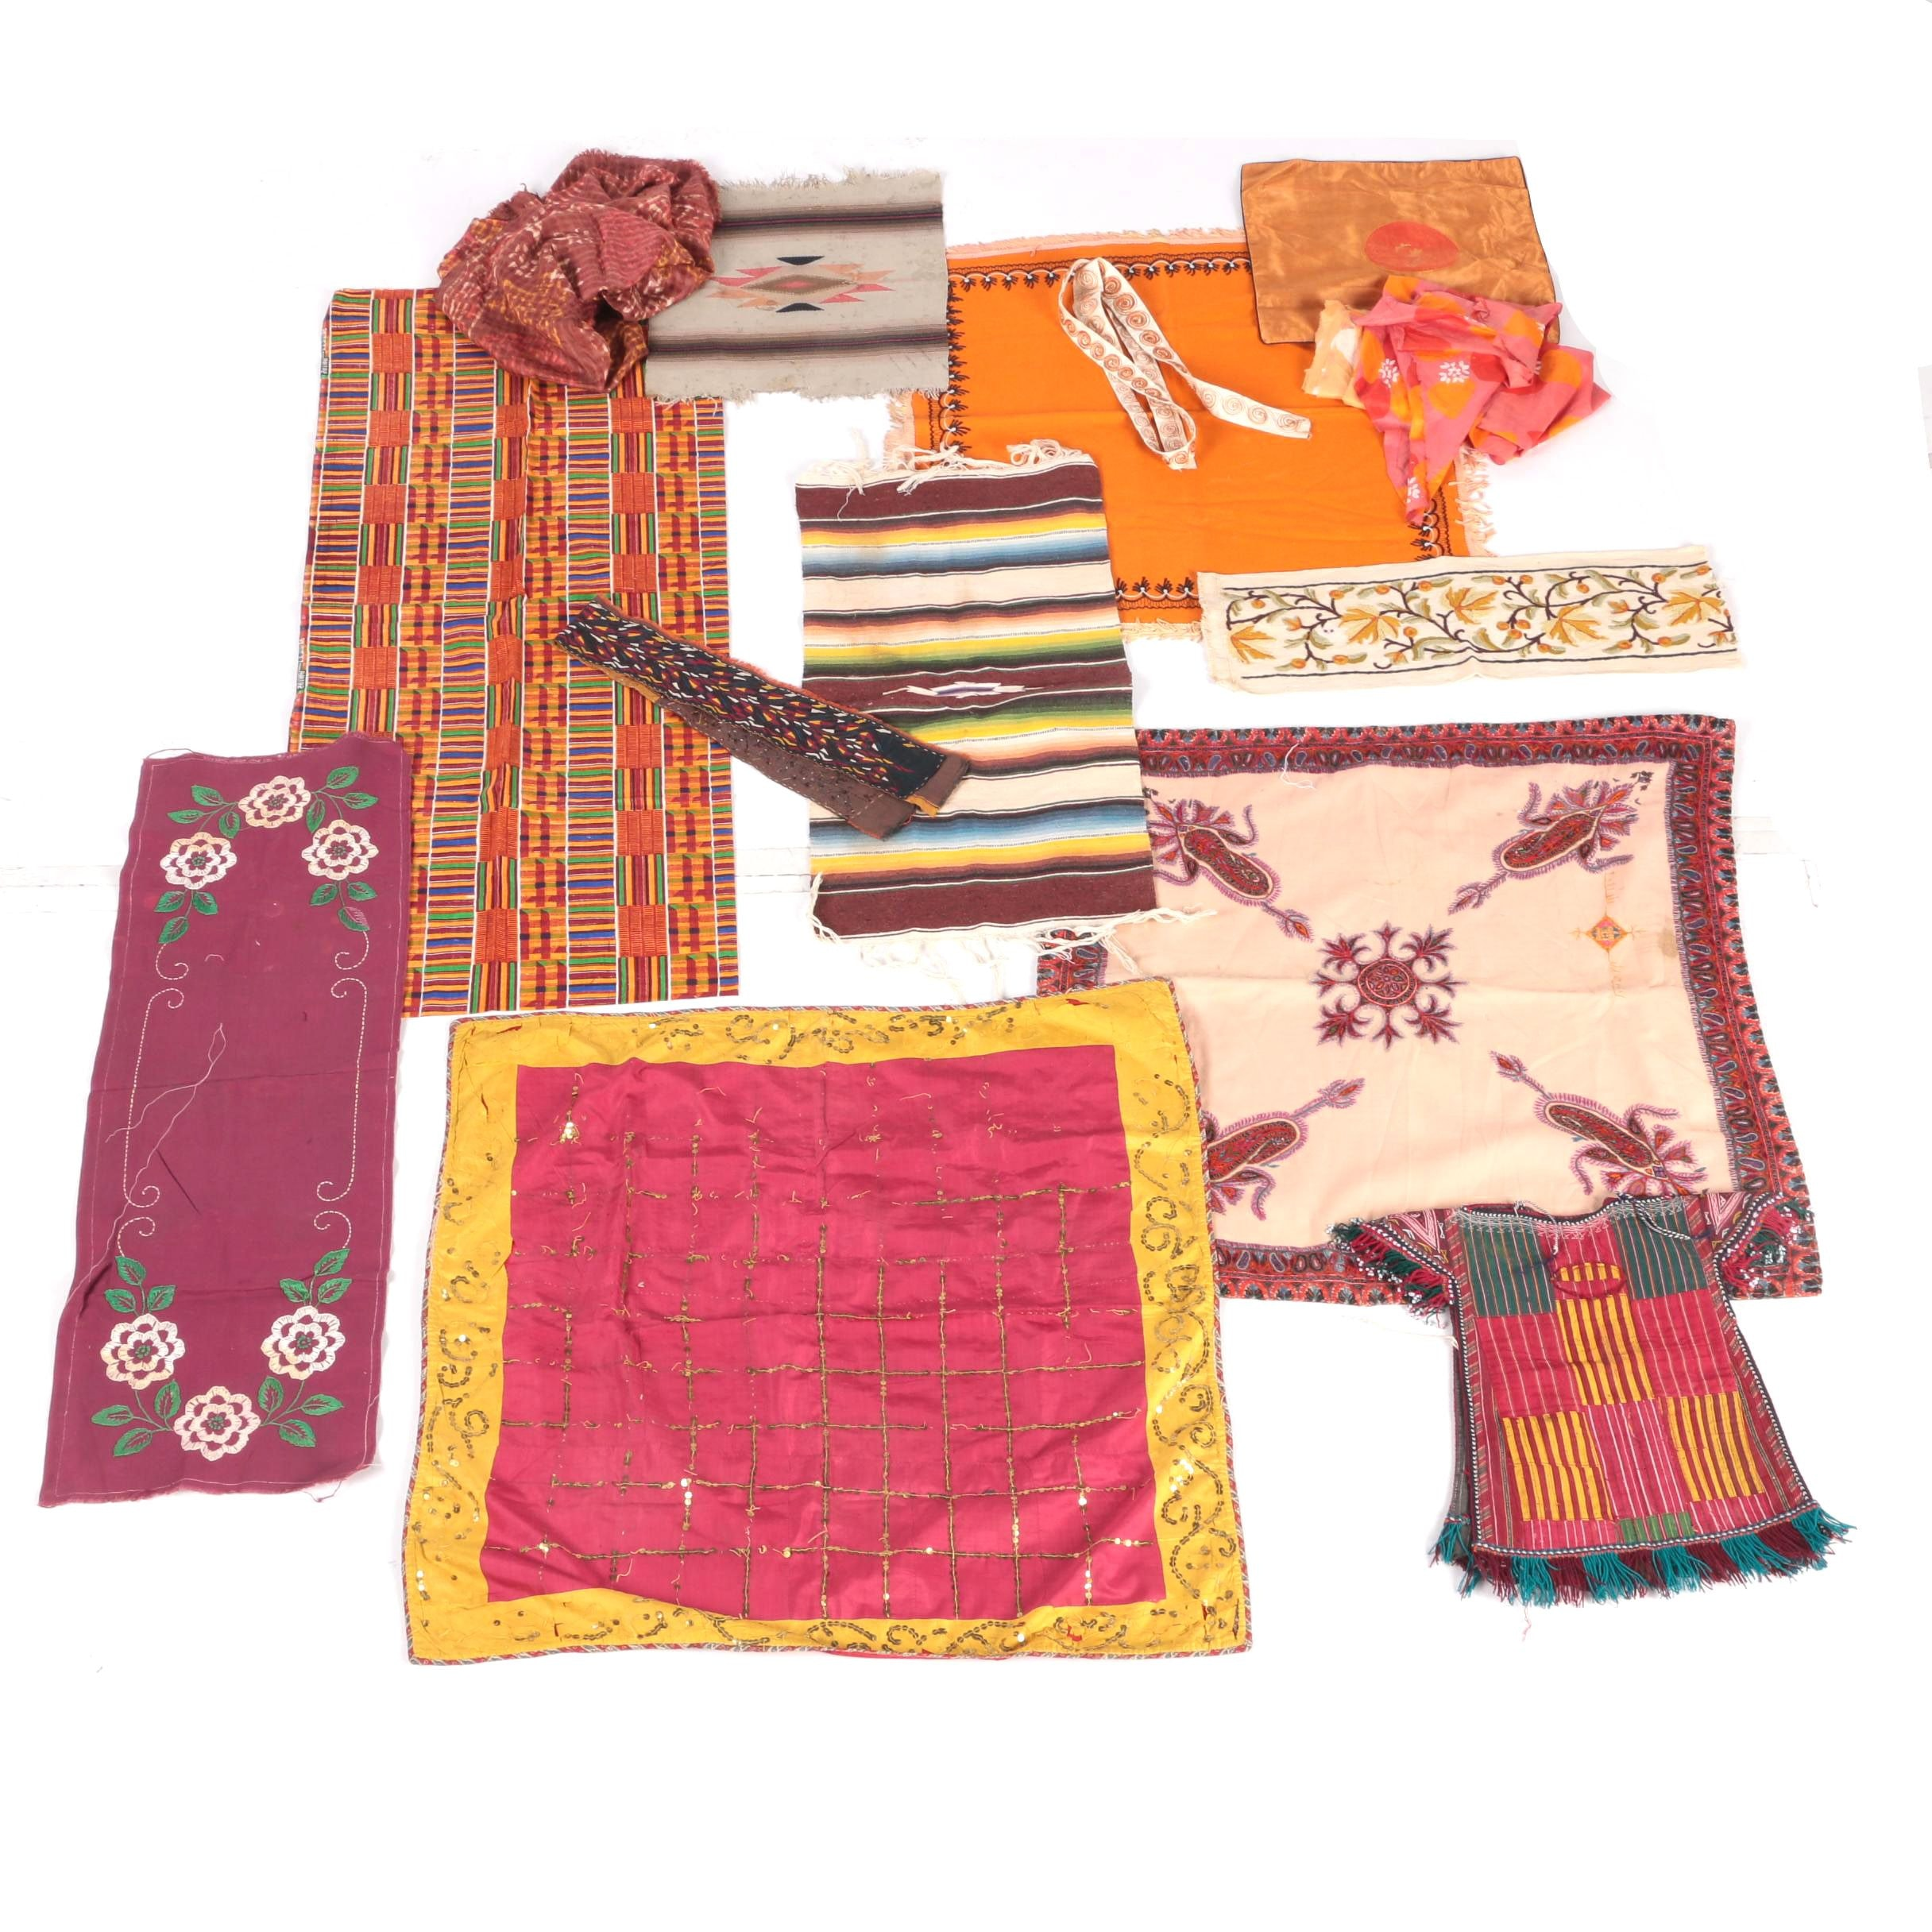 Tablecloths Runners And Assorted linens